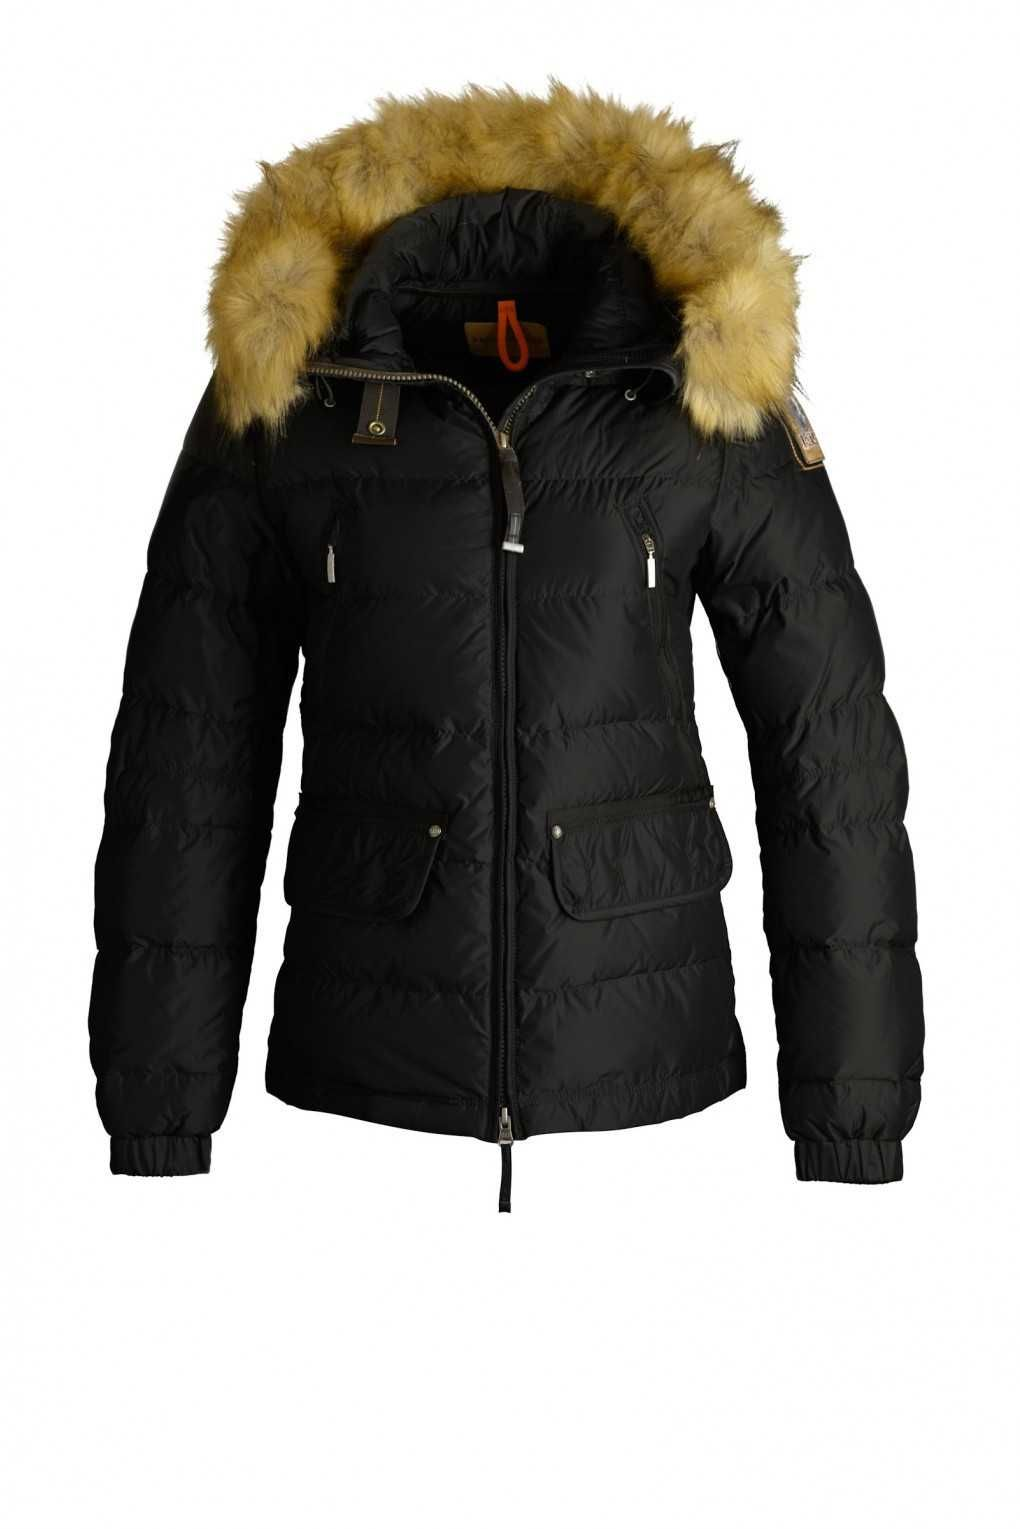 parajumpers mens sale uk